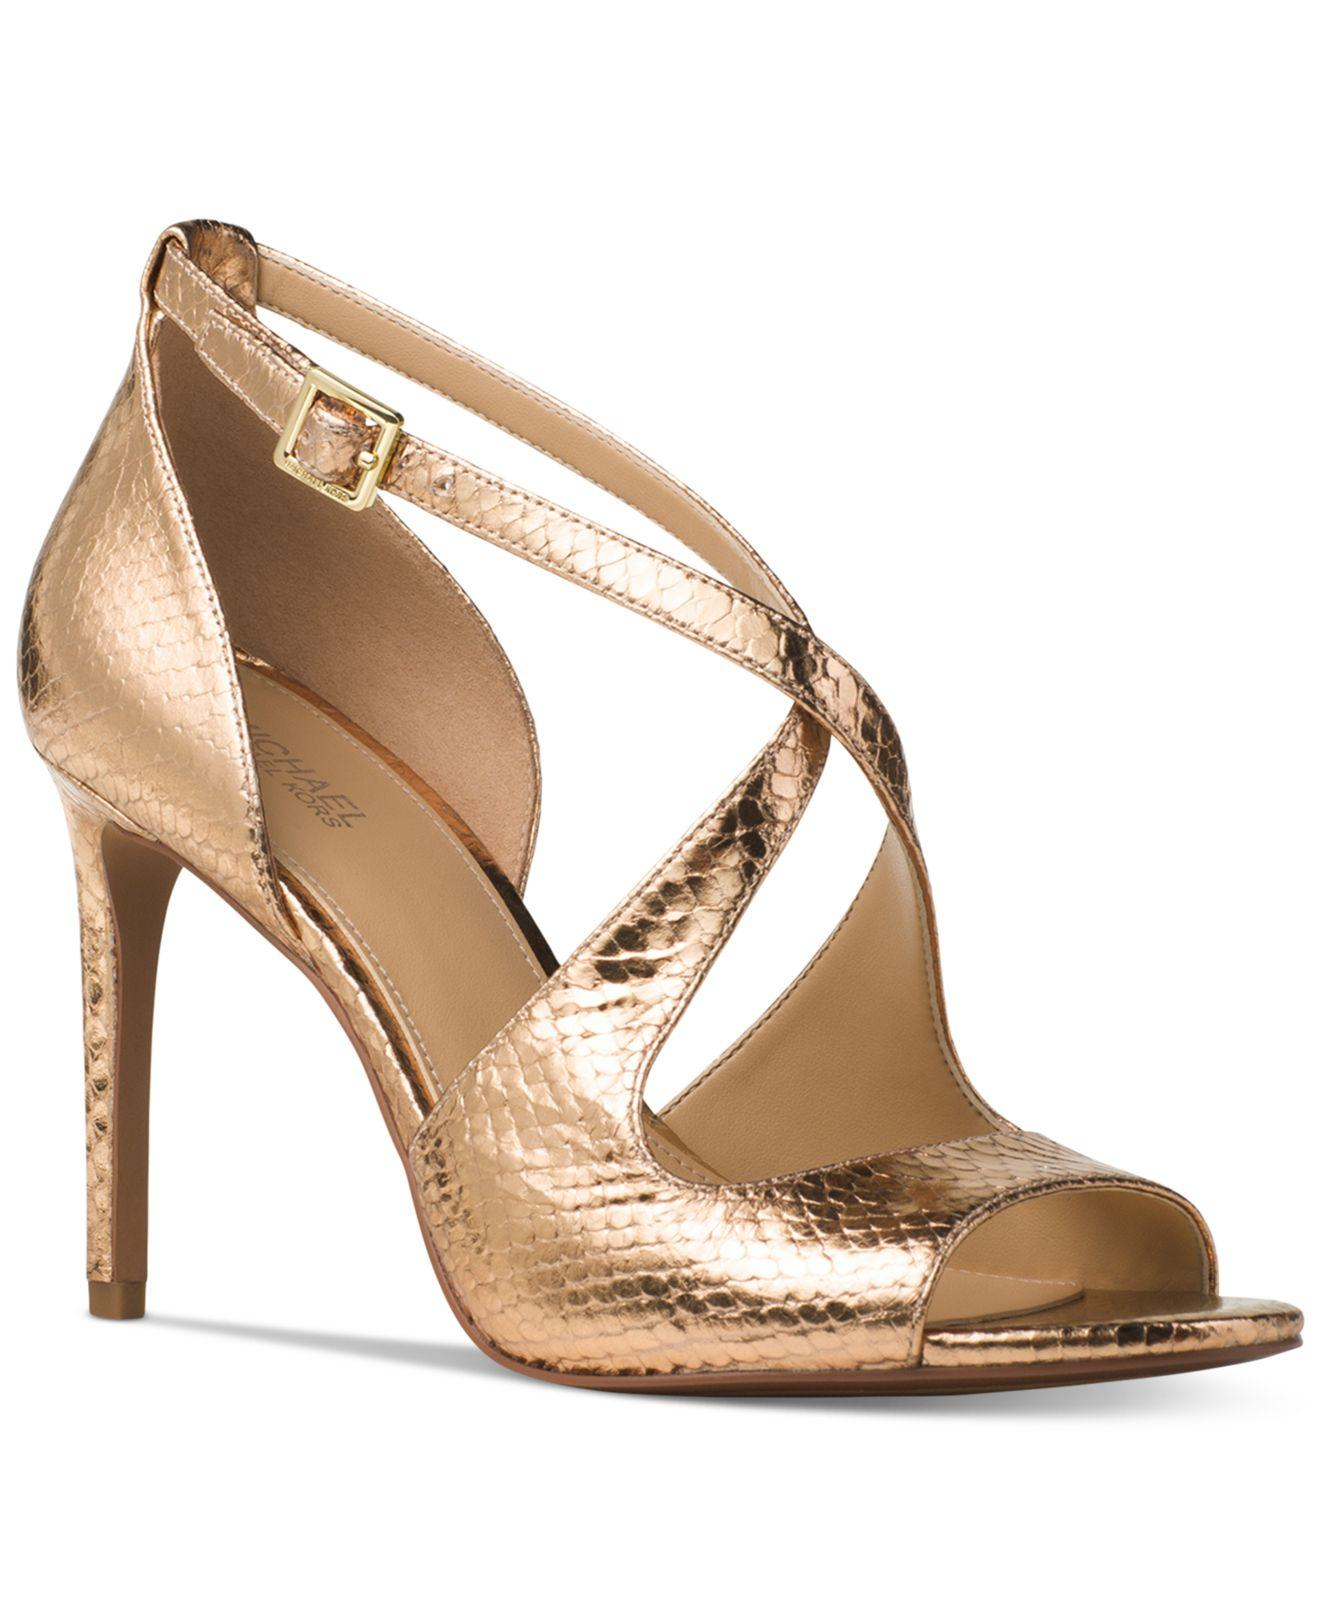 Free shipping on MICHAEL Michael Kors women's shoes at derfkasiber.ga Find a great selection of sneakers, boots, sandals, pumps & more. Free shipping & returns.